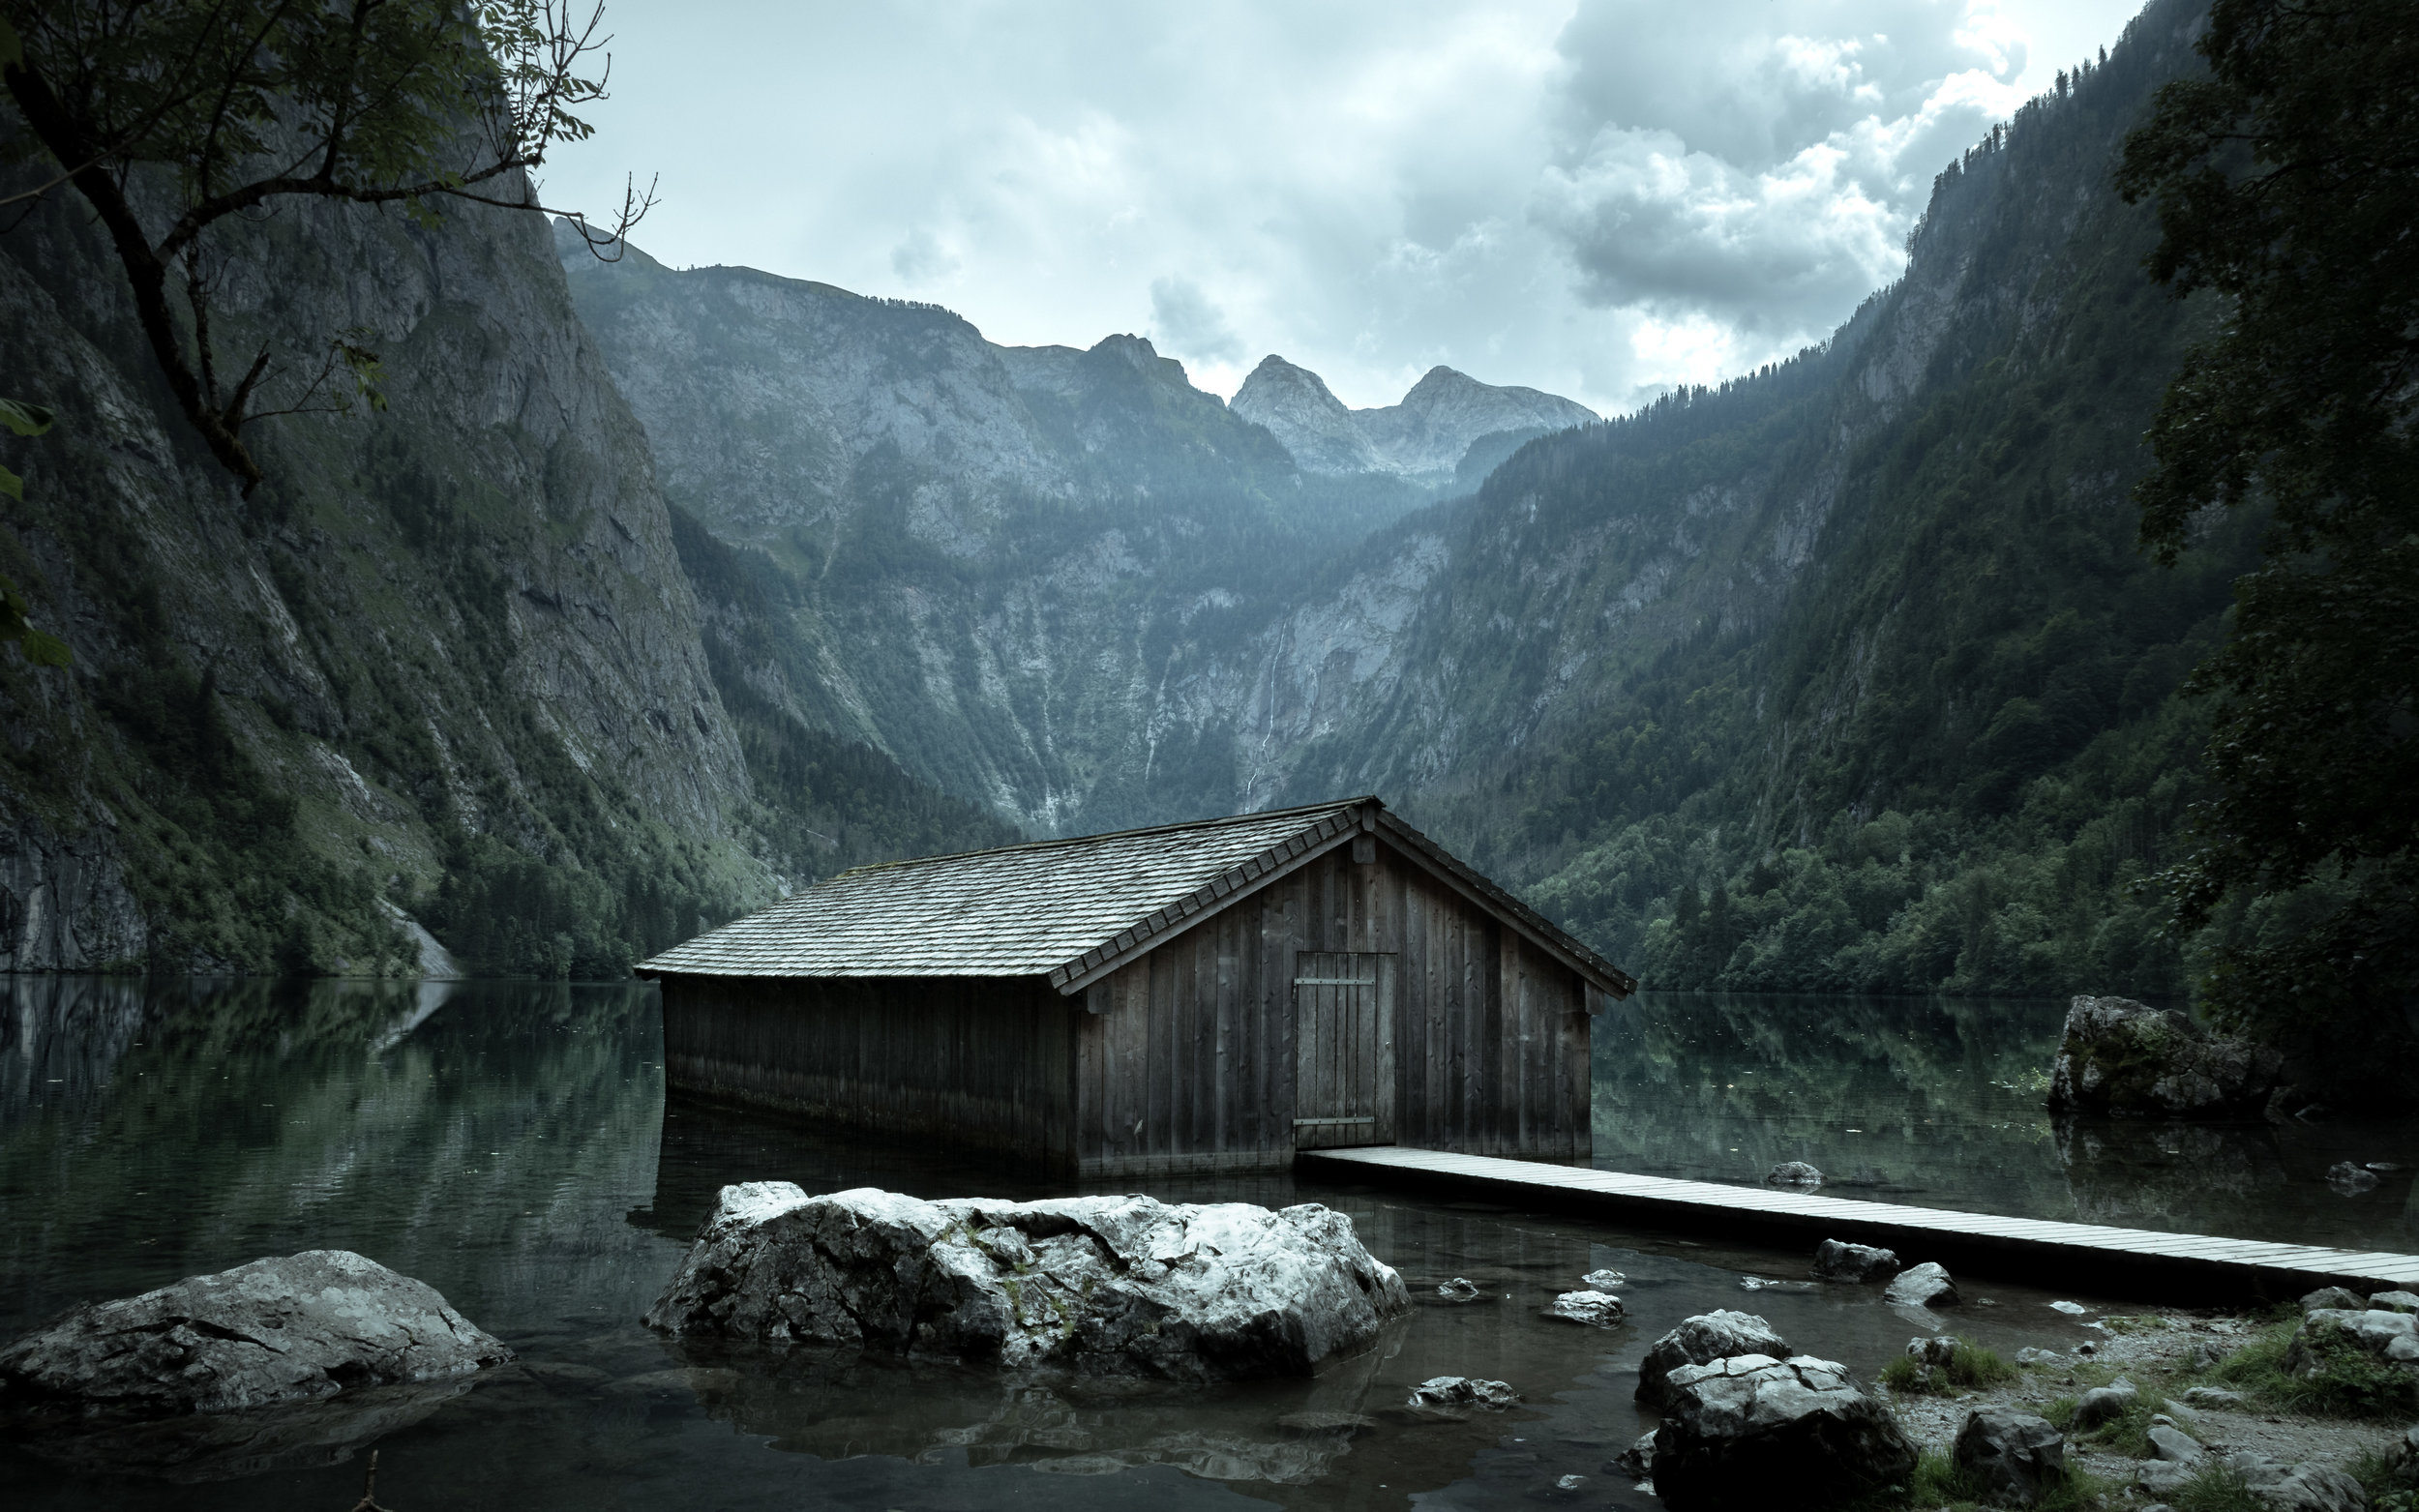 Spooky-looking cabin surrounded by mountains